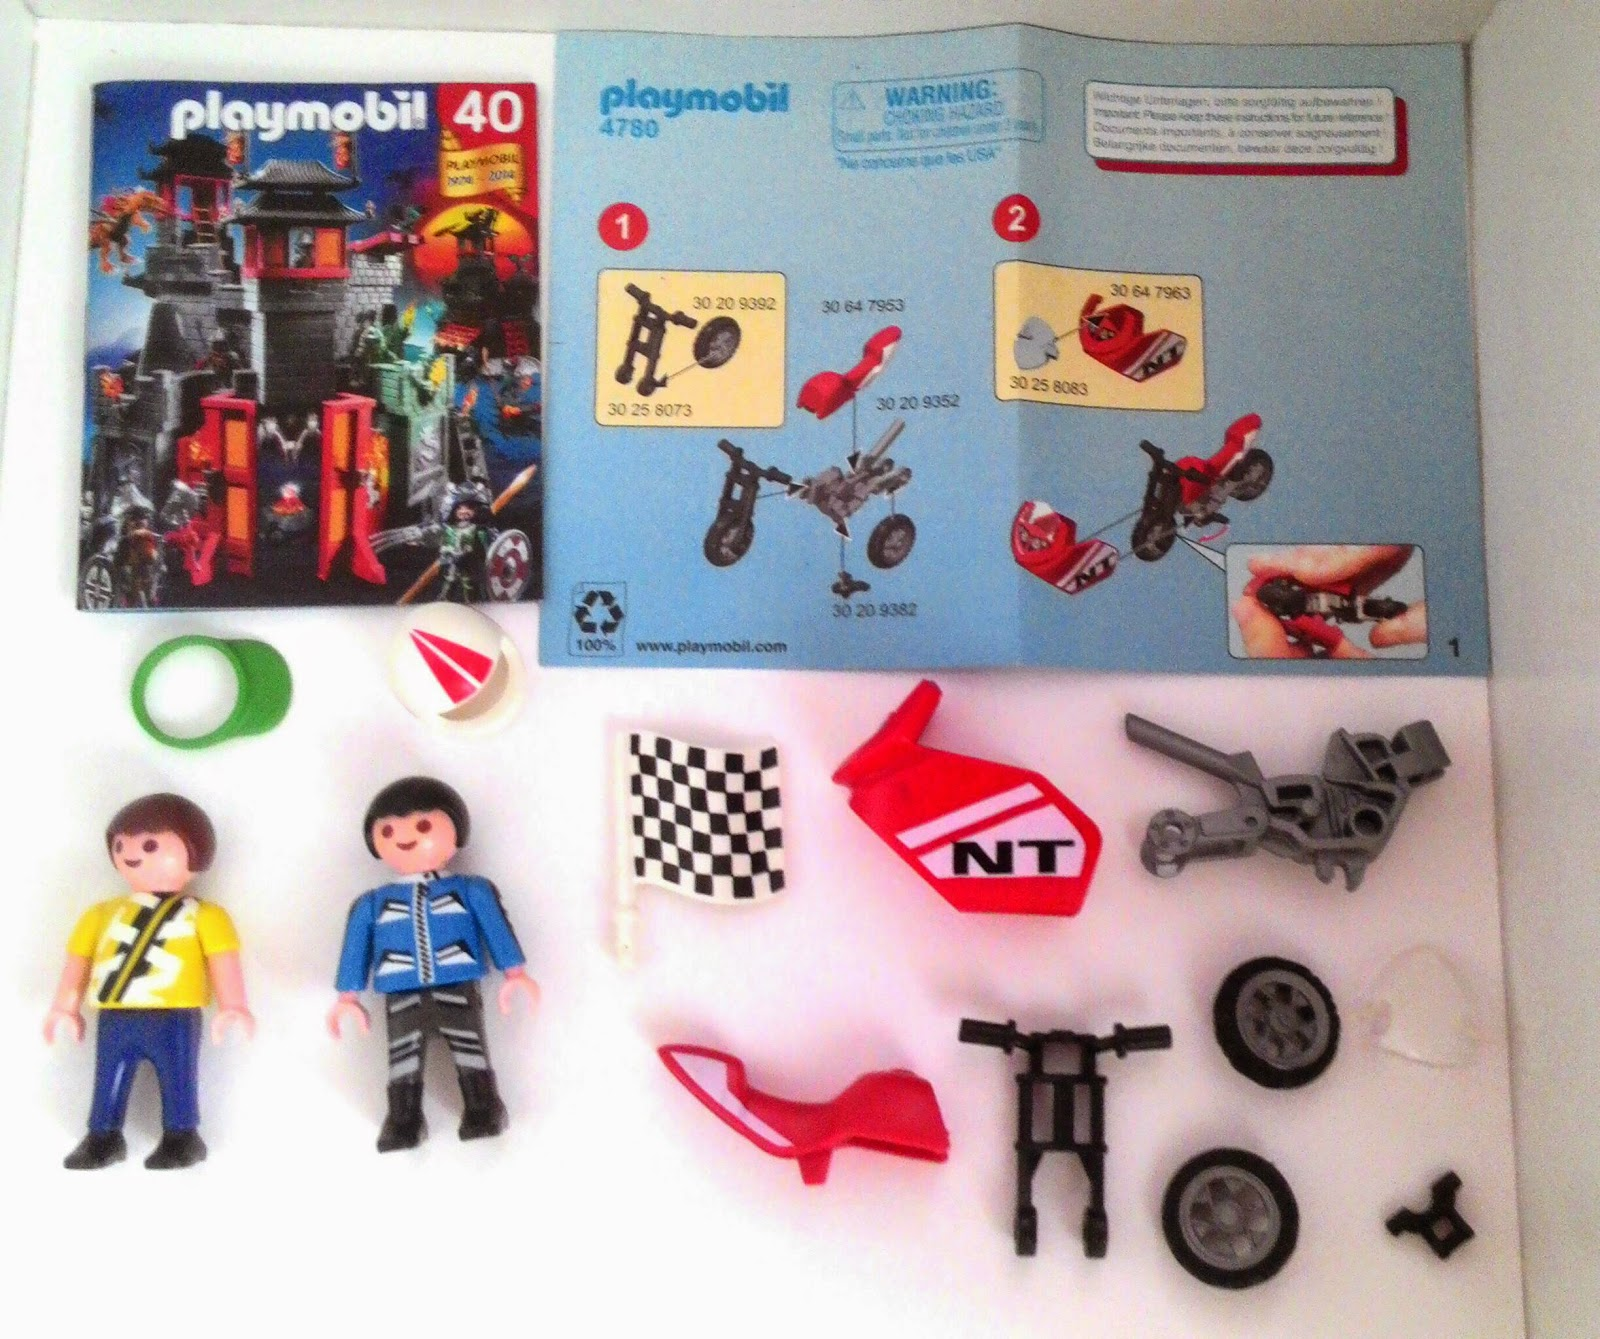 Playmobil Esszimmer 5335 Playmobil Special Plus 4780 兒童賽車 Sophiaのplaymobil摩比玩樂手帳